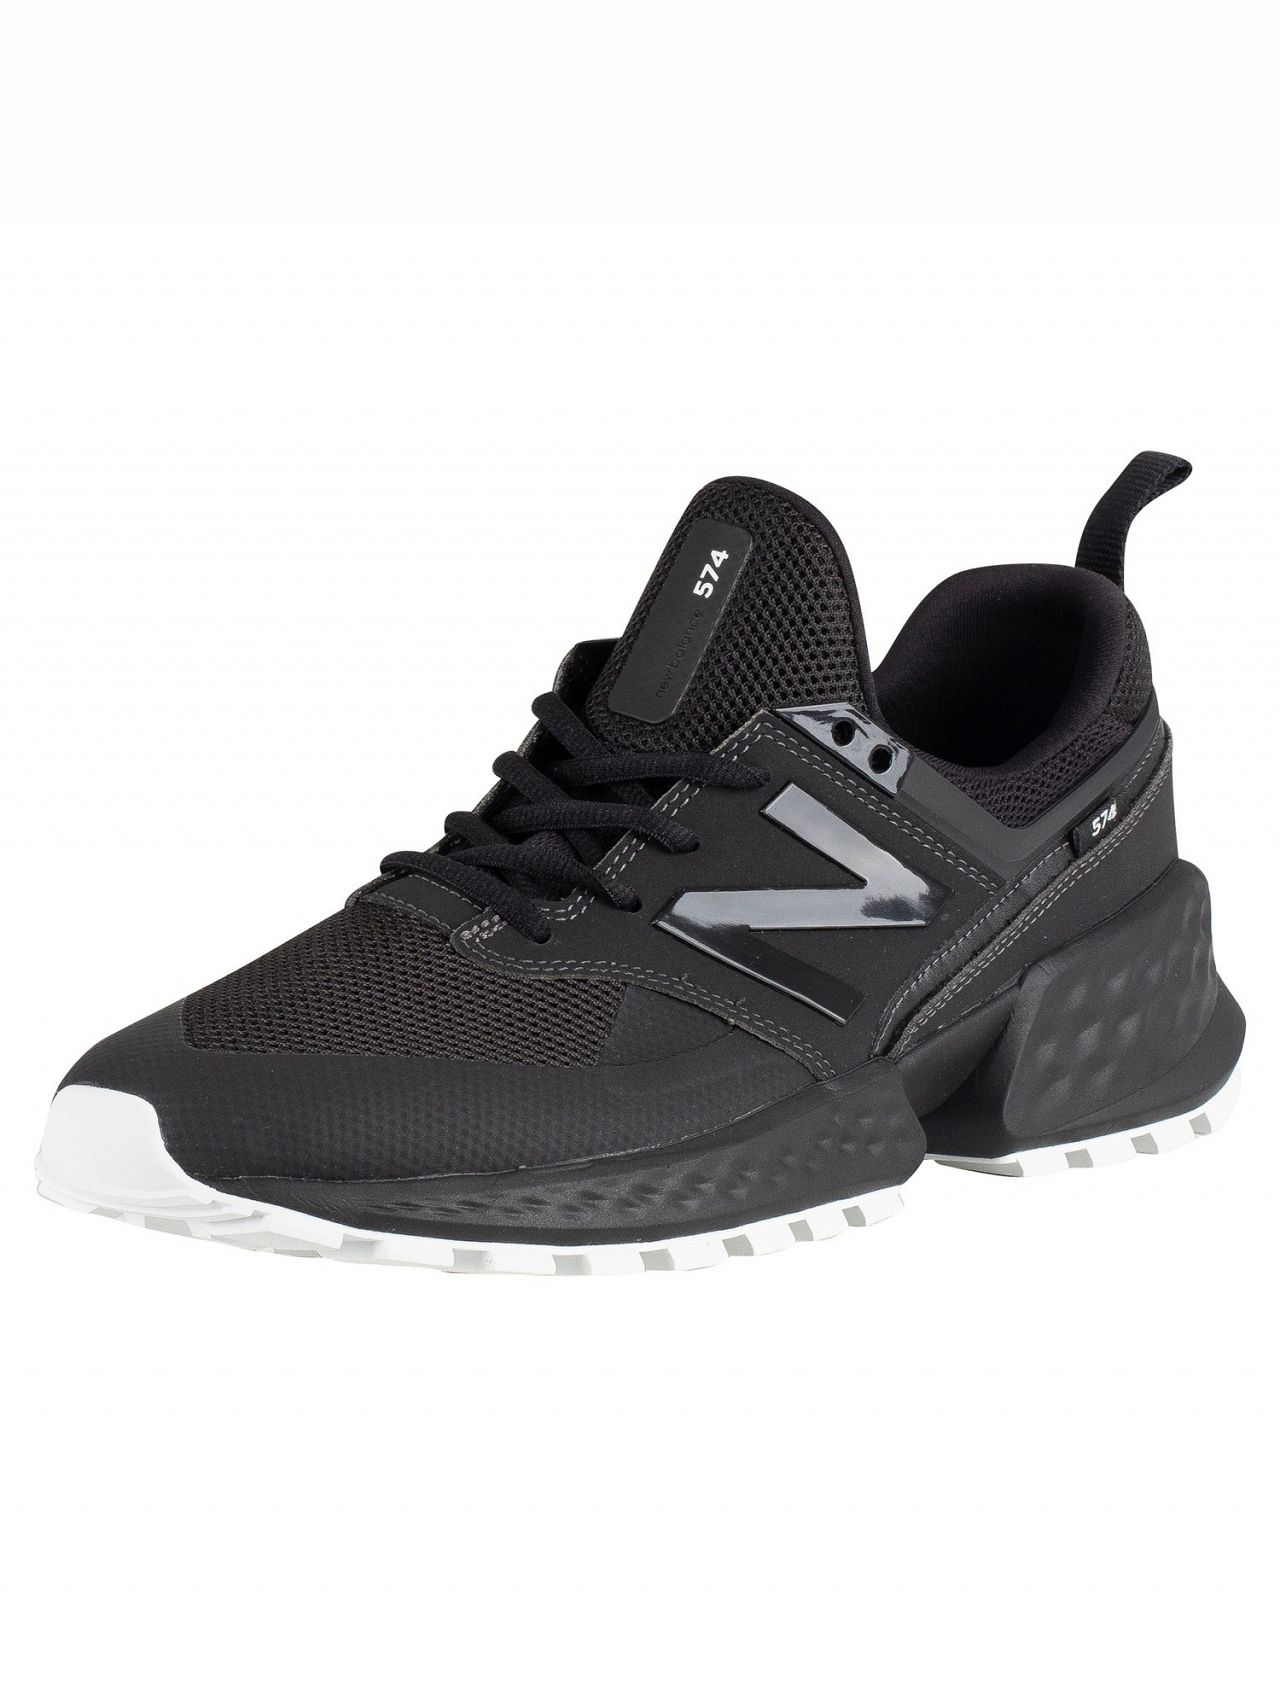 0aecb394a6647 New Balance Black 574 Leather Trainers | Standout